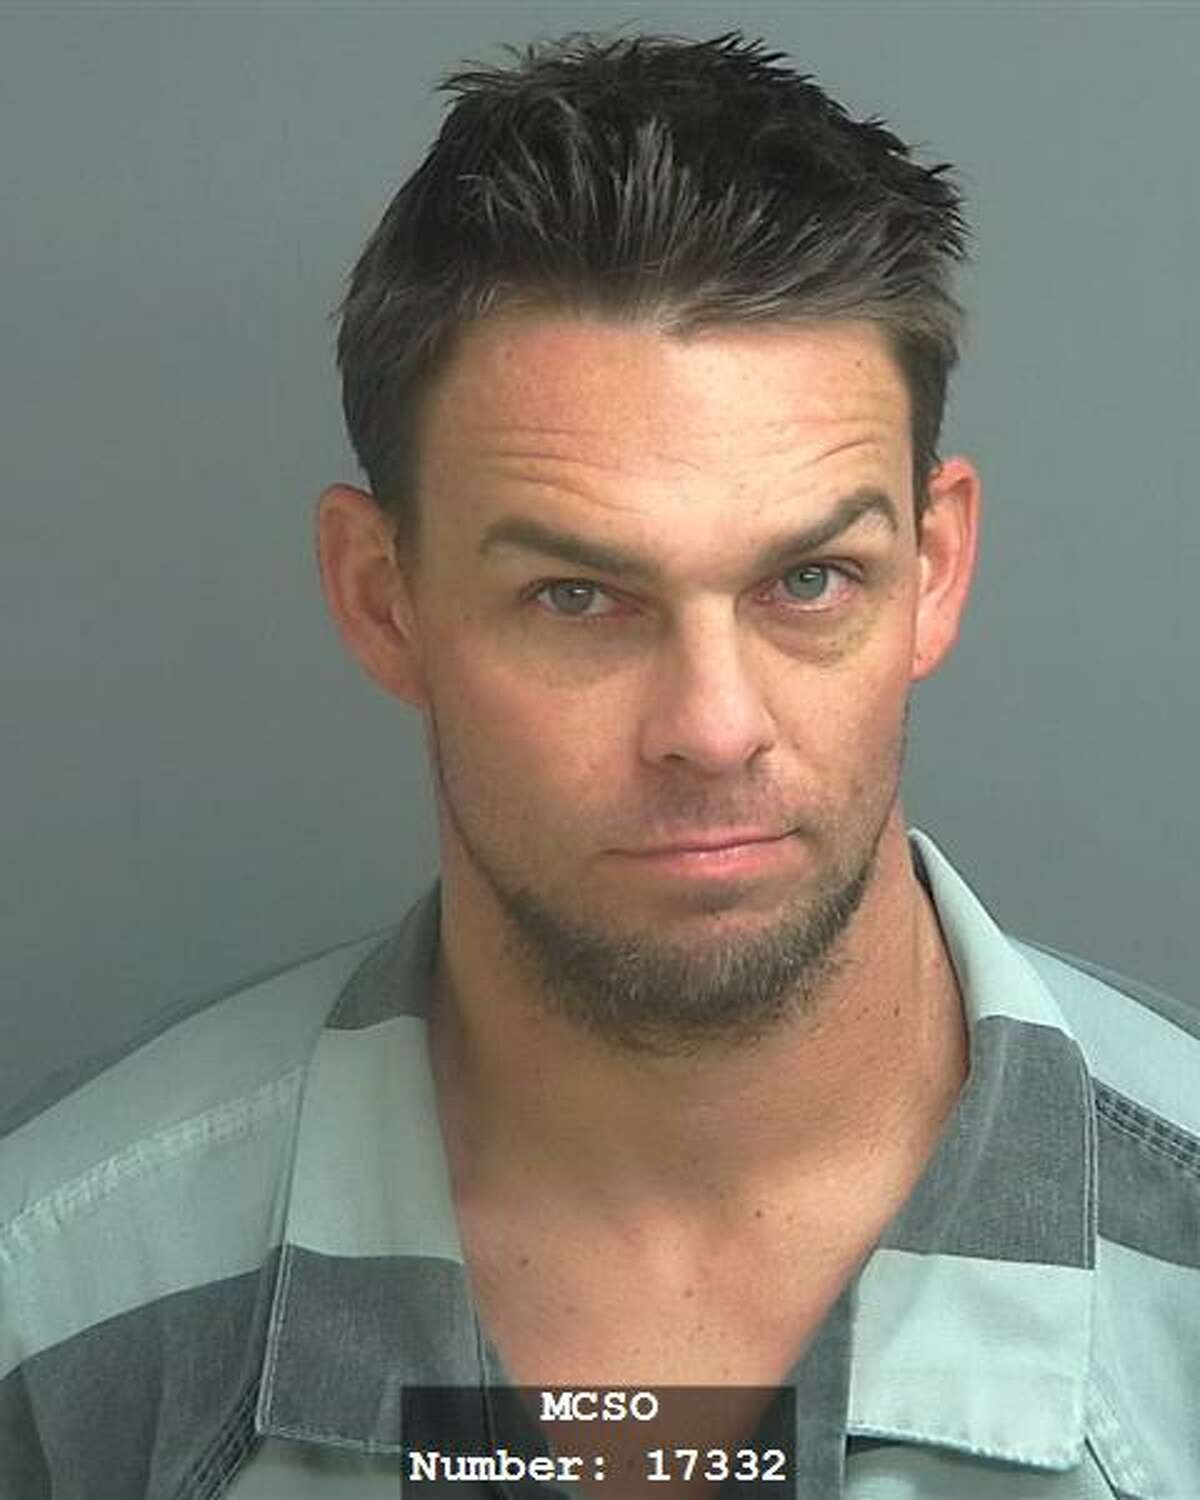 Ryan Coleman Wulfjen of Conroe is wanted by the Montgomery County Sheriff's Office on a charge of theft of firearm.